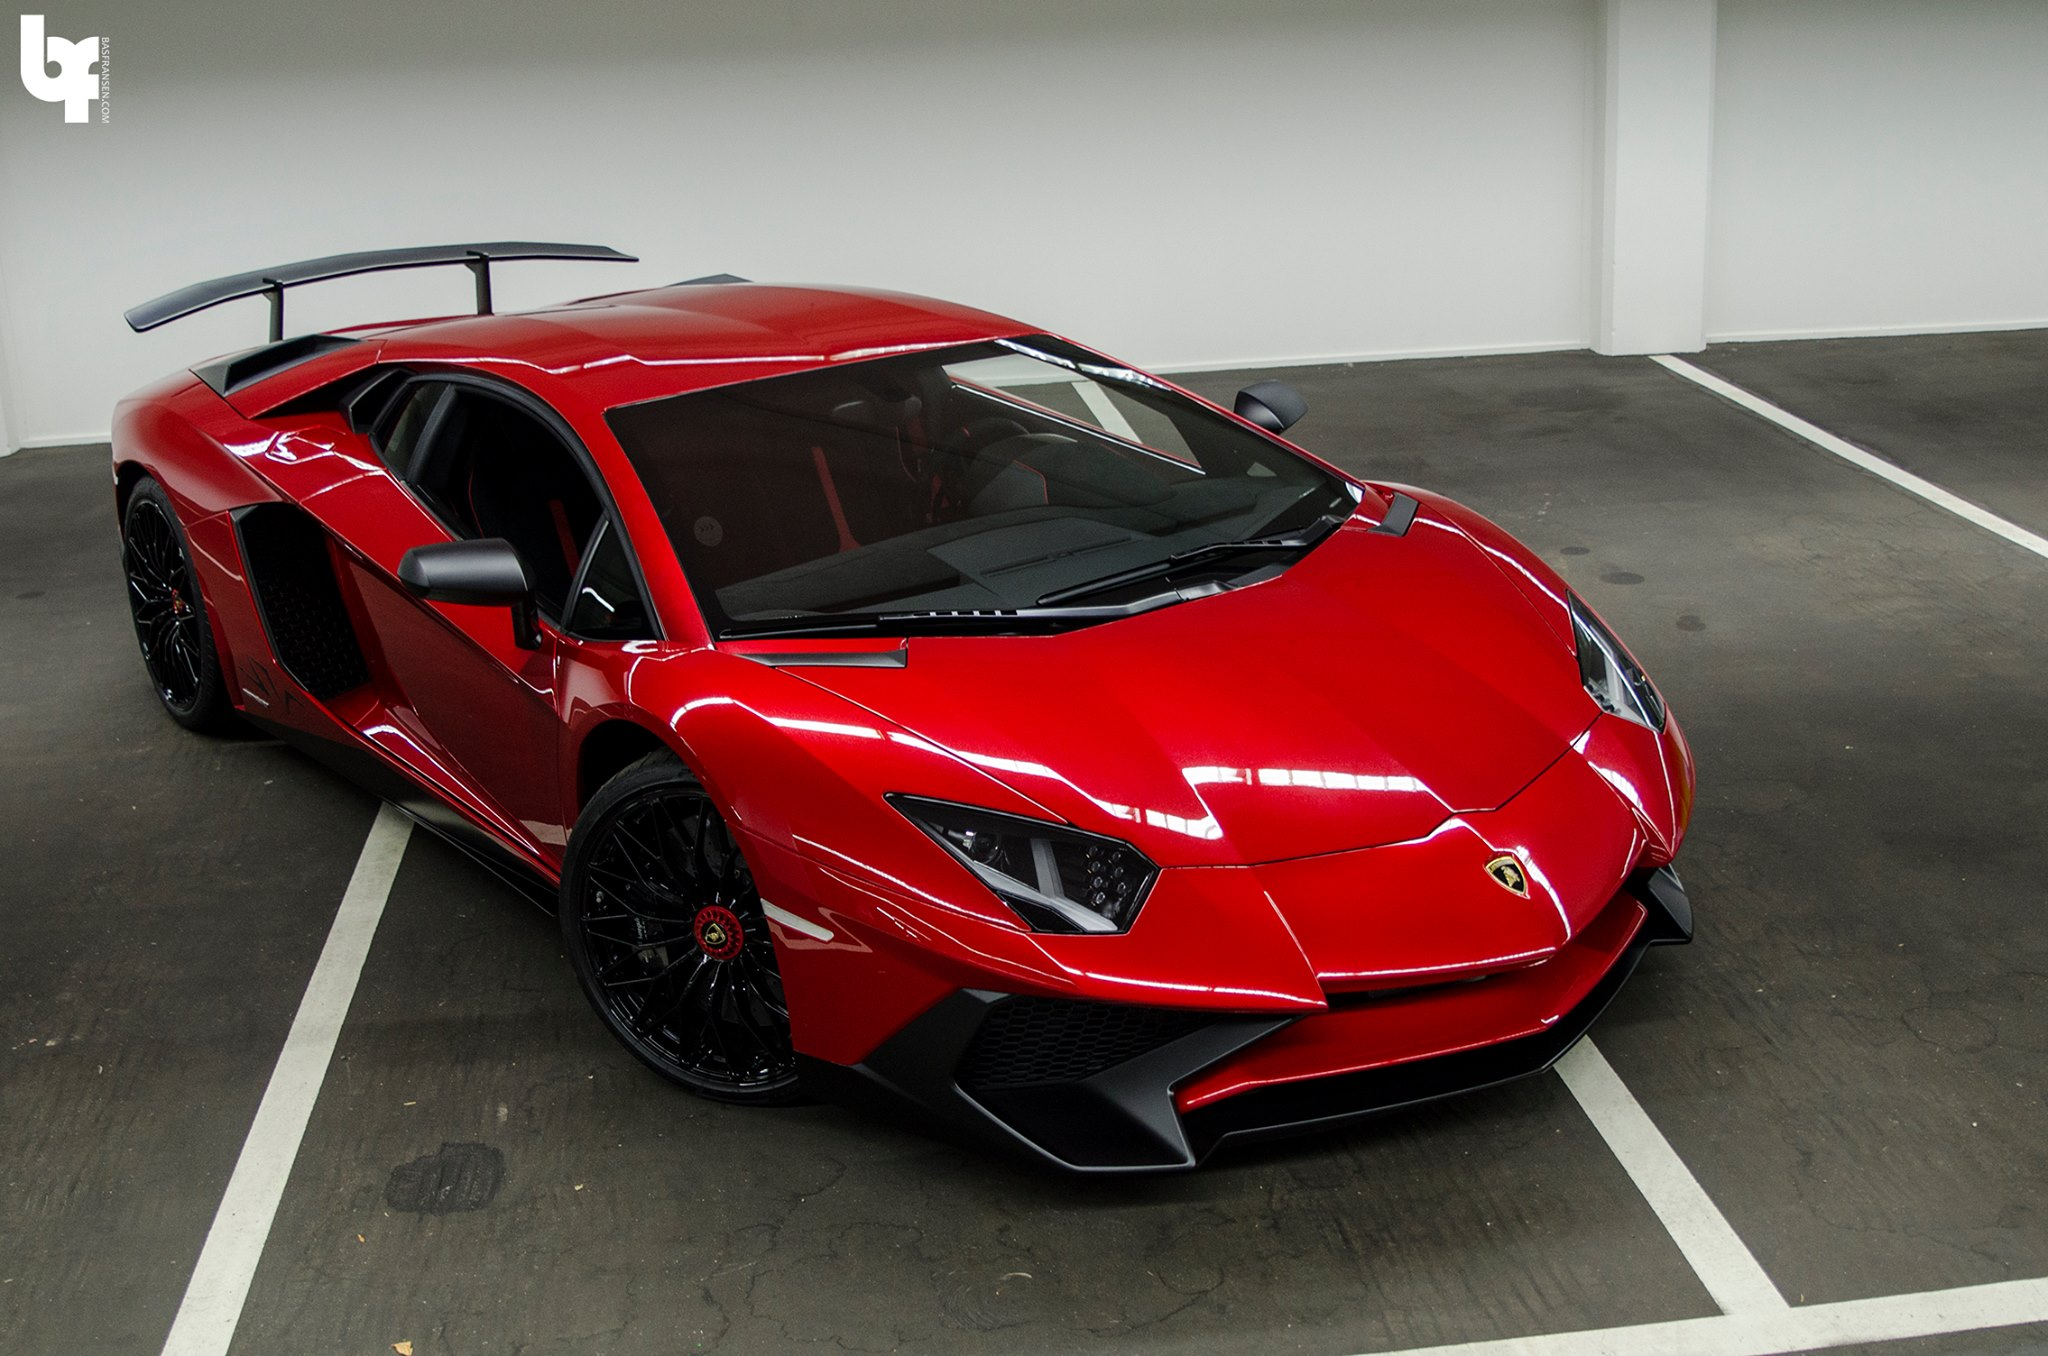 dj afrojack 39 s new rosso bia lamborghini aventador sv. Black Bedroom Furniture Sets. Home Design Ideas